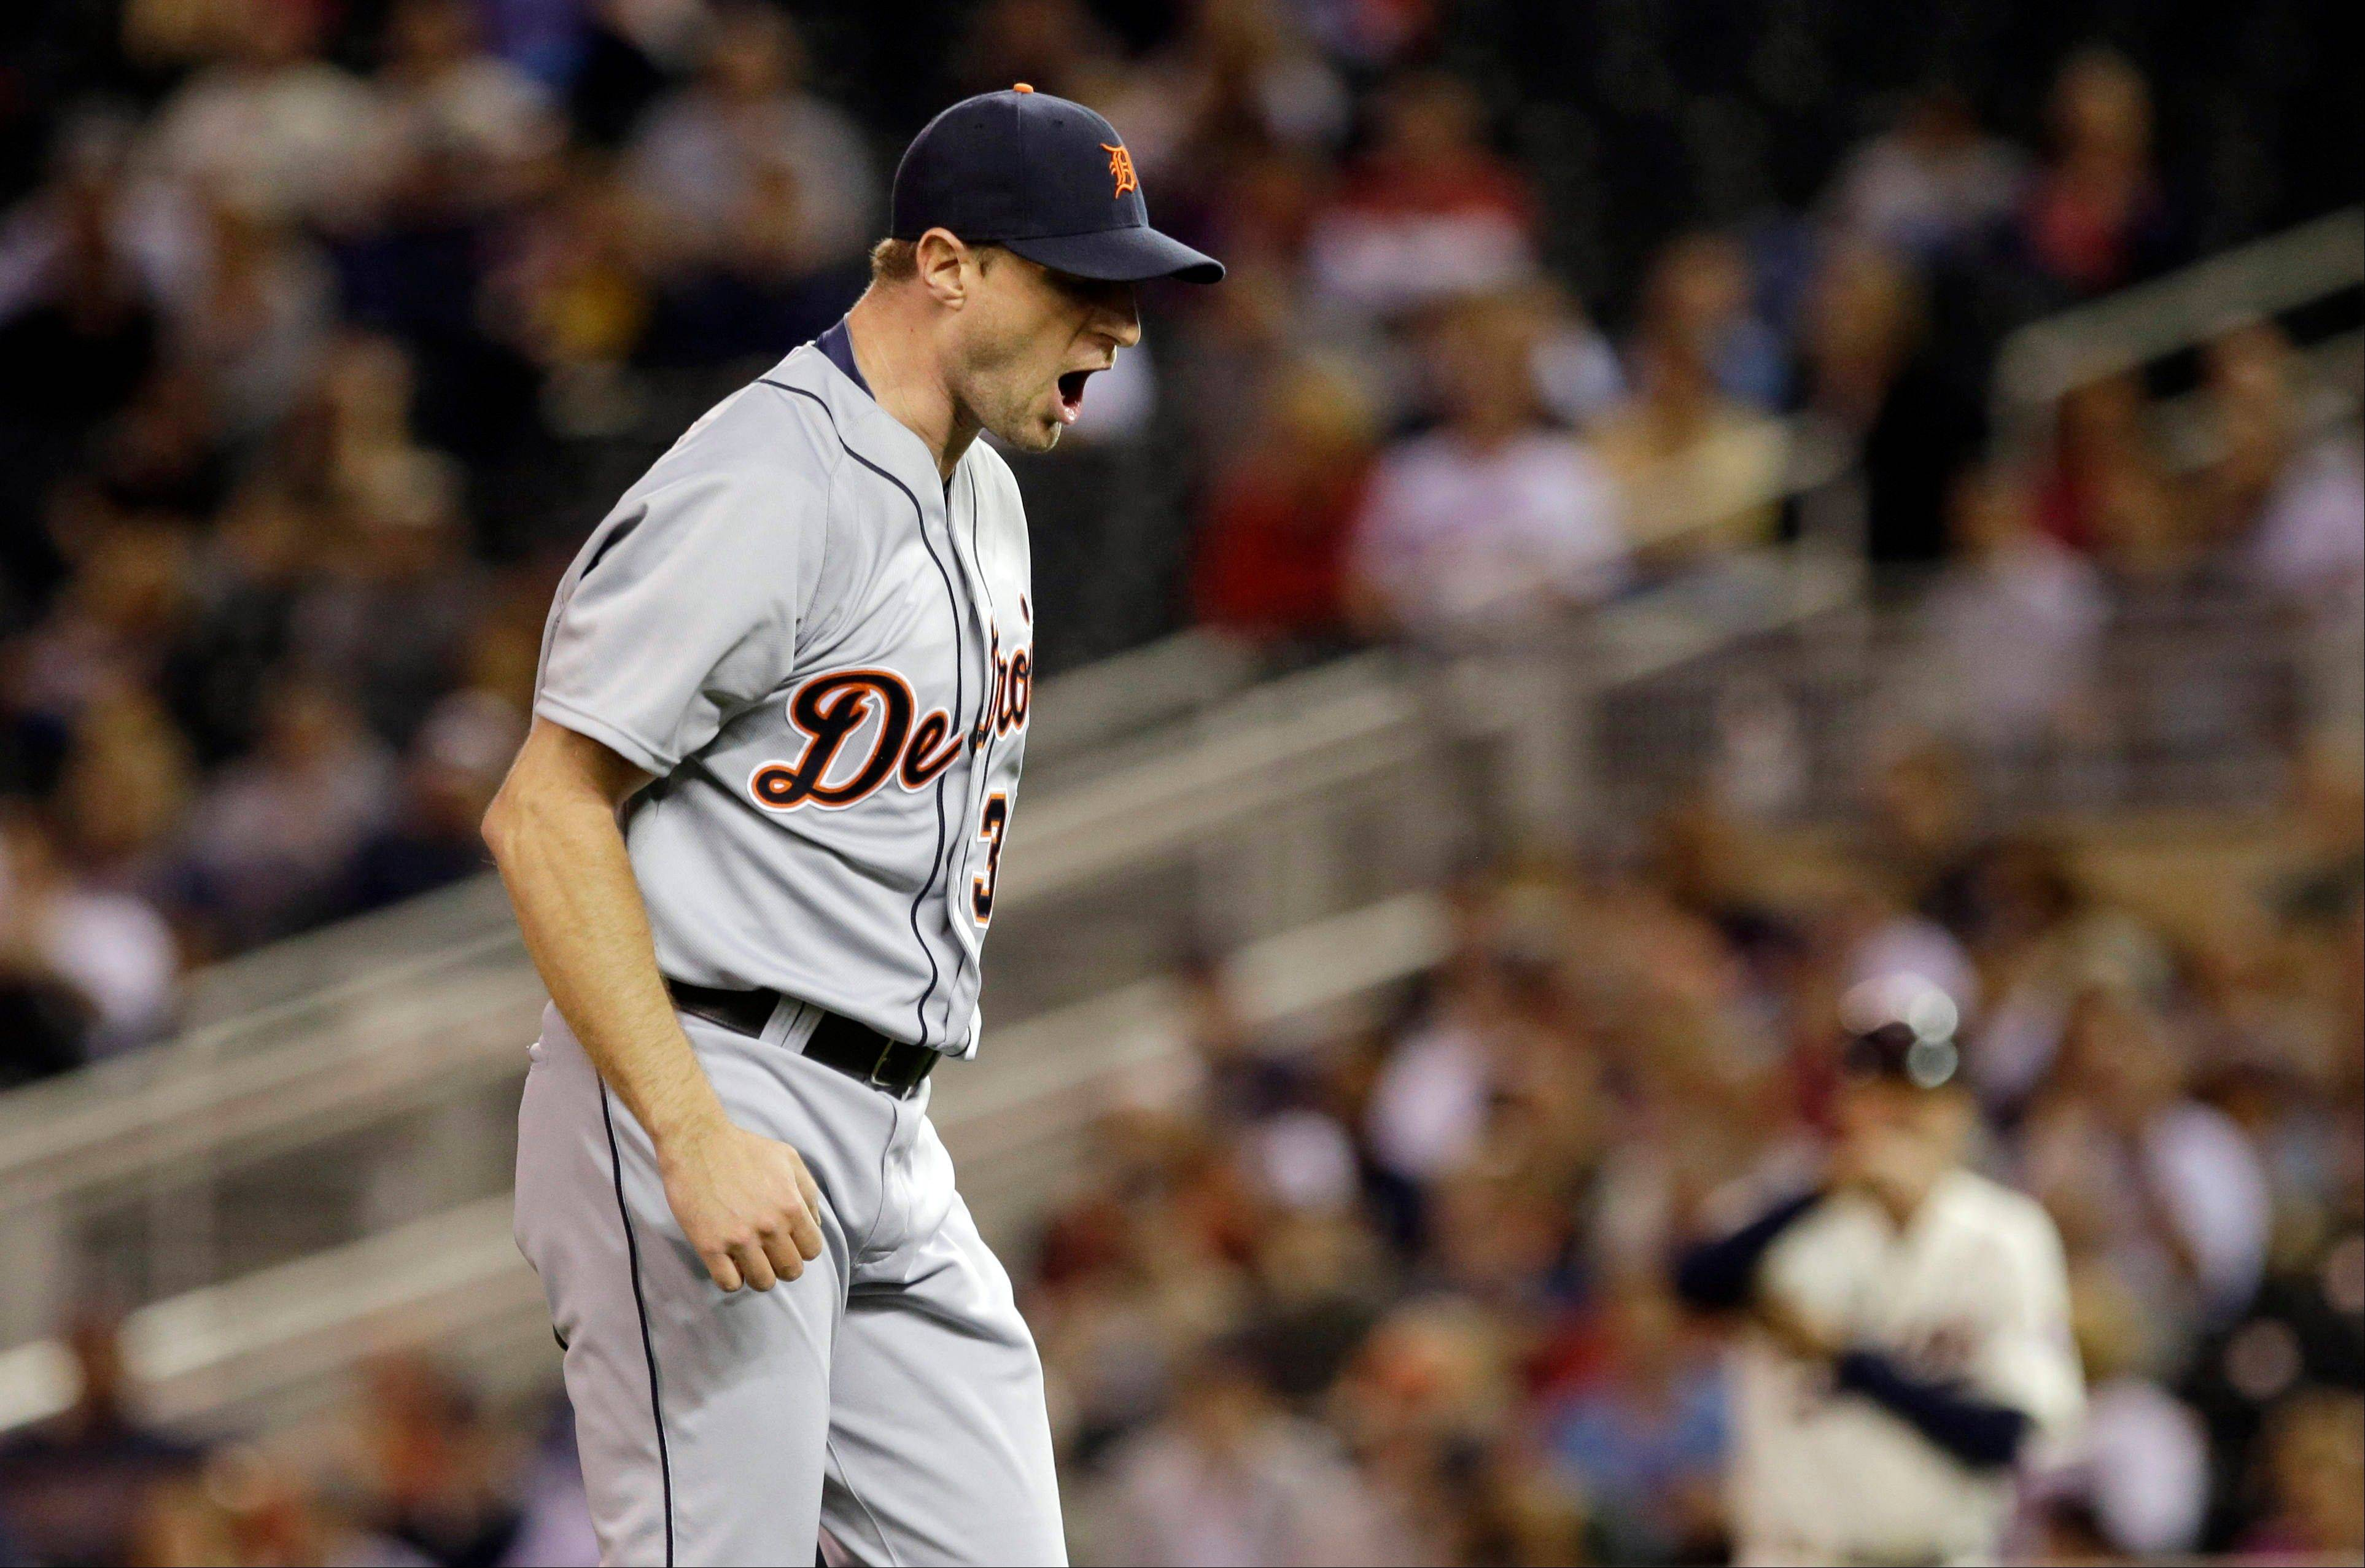 Detroit Tigers pitcher Max Scherzer reacts after he struck out Minnesota Twins' Josmil Pinto to end the first inning of a baseball game Wednesday in Minneapolis.